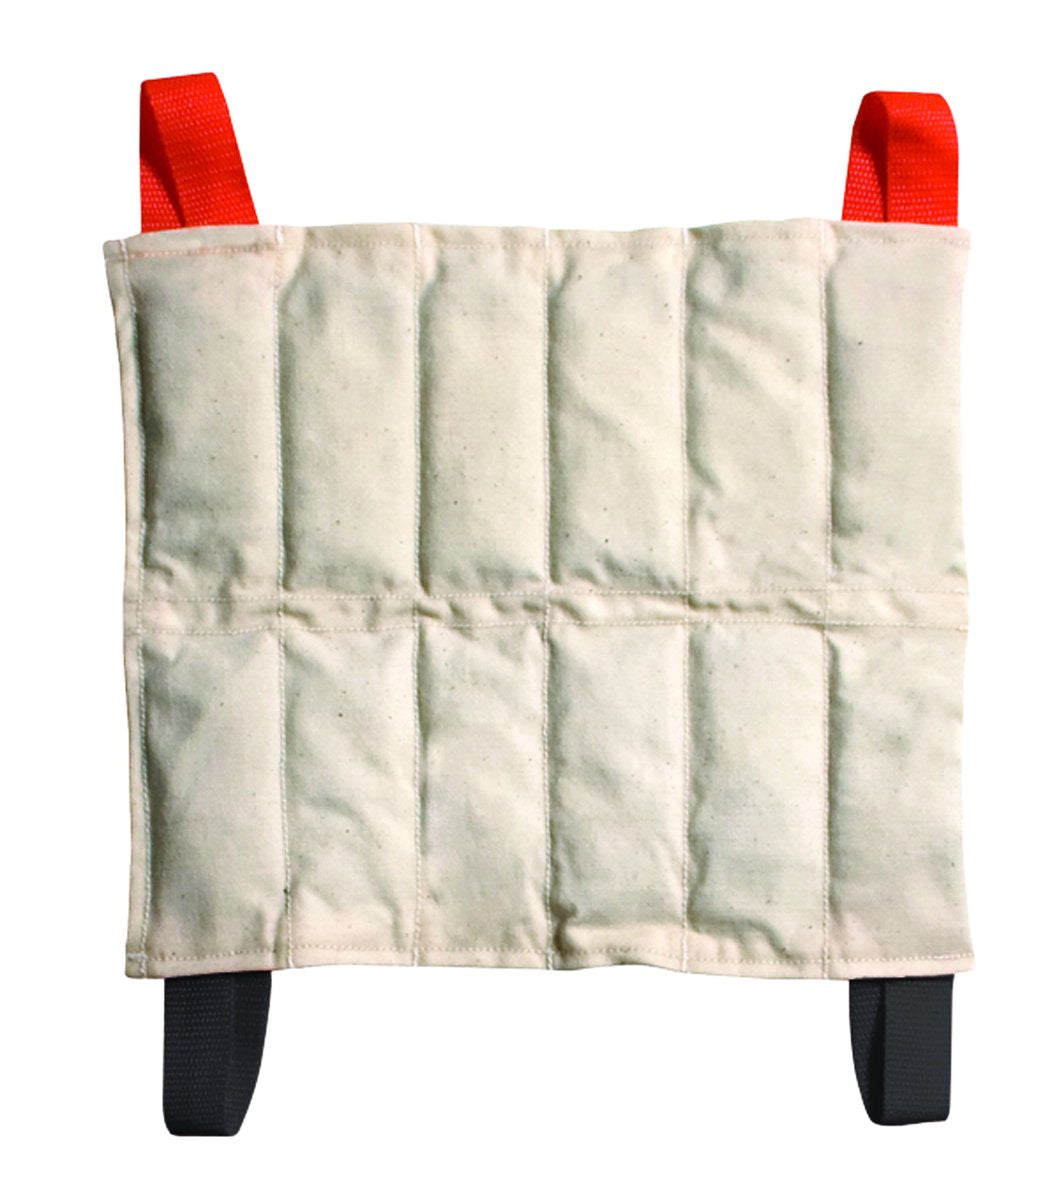 Relief Pak Moist Heat Pack